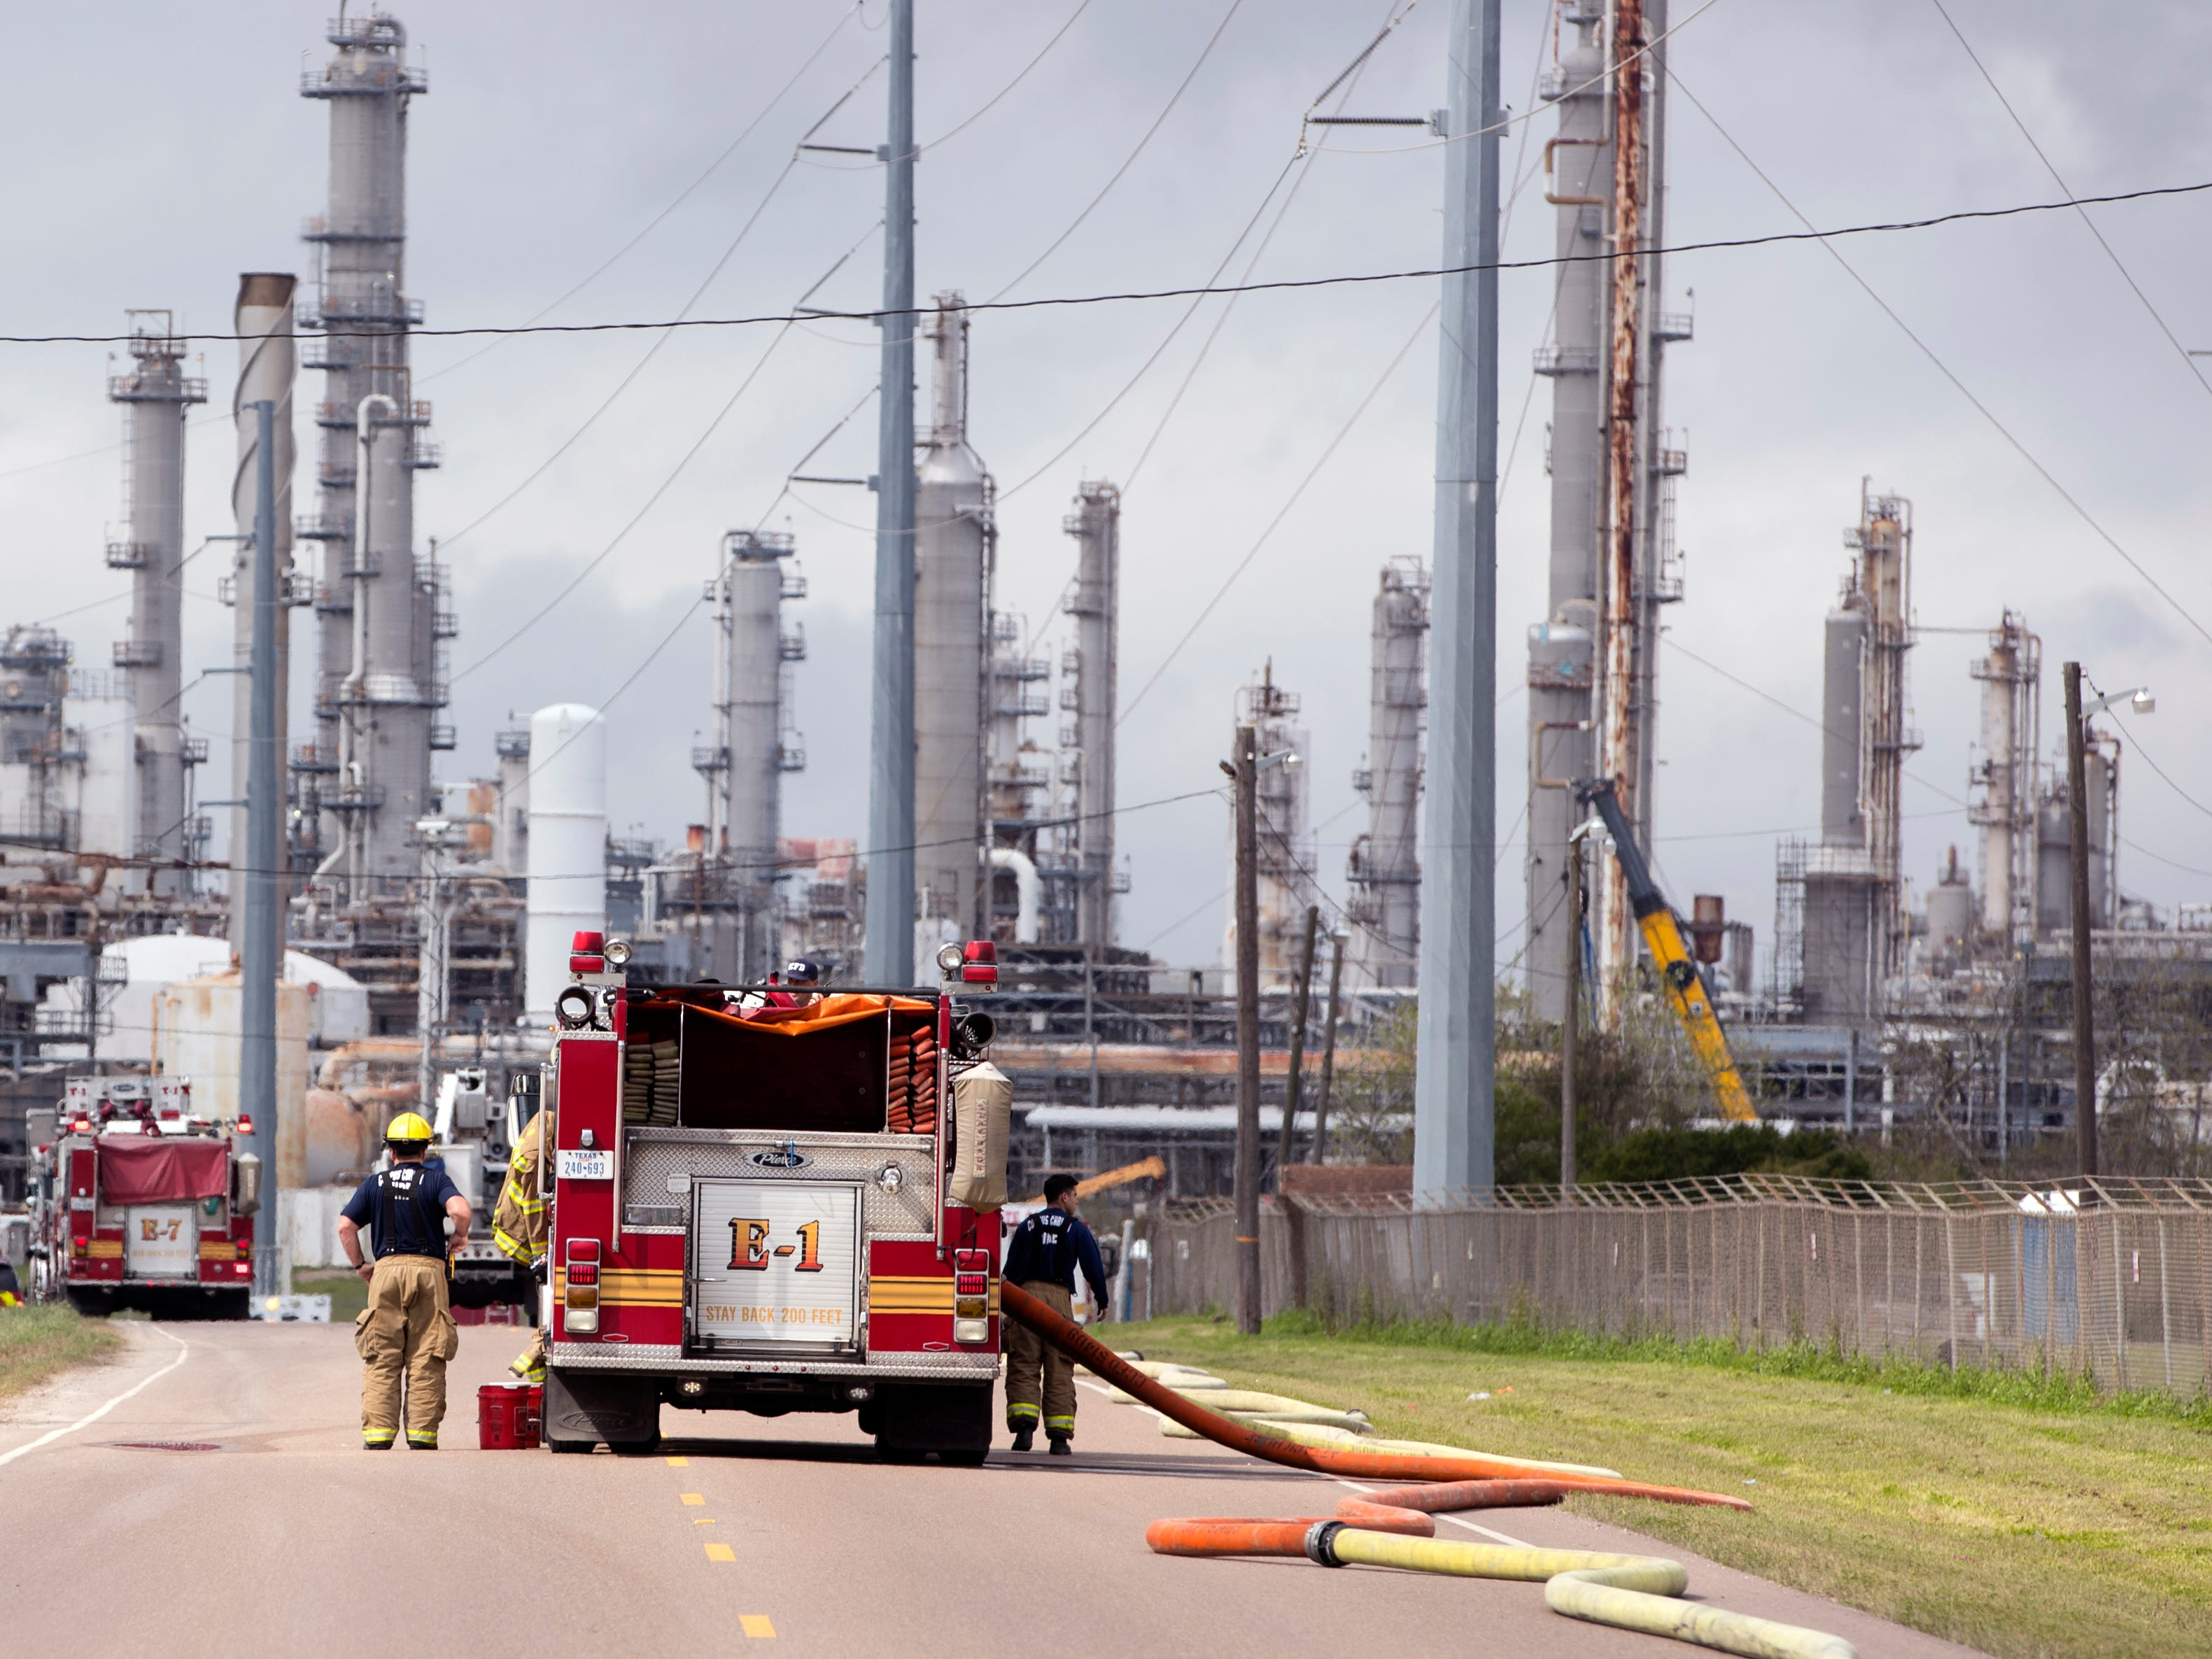 The Corpus Christi Fire Department works to extinguish a grain silo fire at the Interstate Grain Port Terminal near the intersection of Up River Road and Lantana Street on Monday, Feb. 11, 2019.